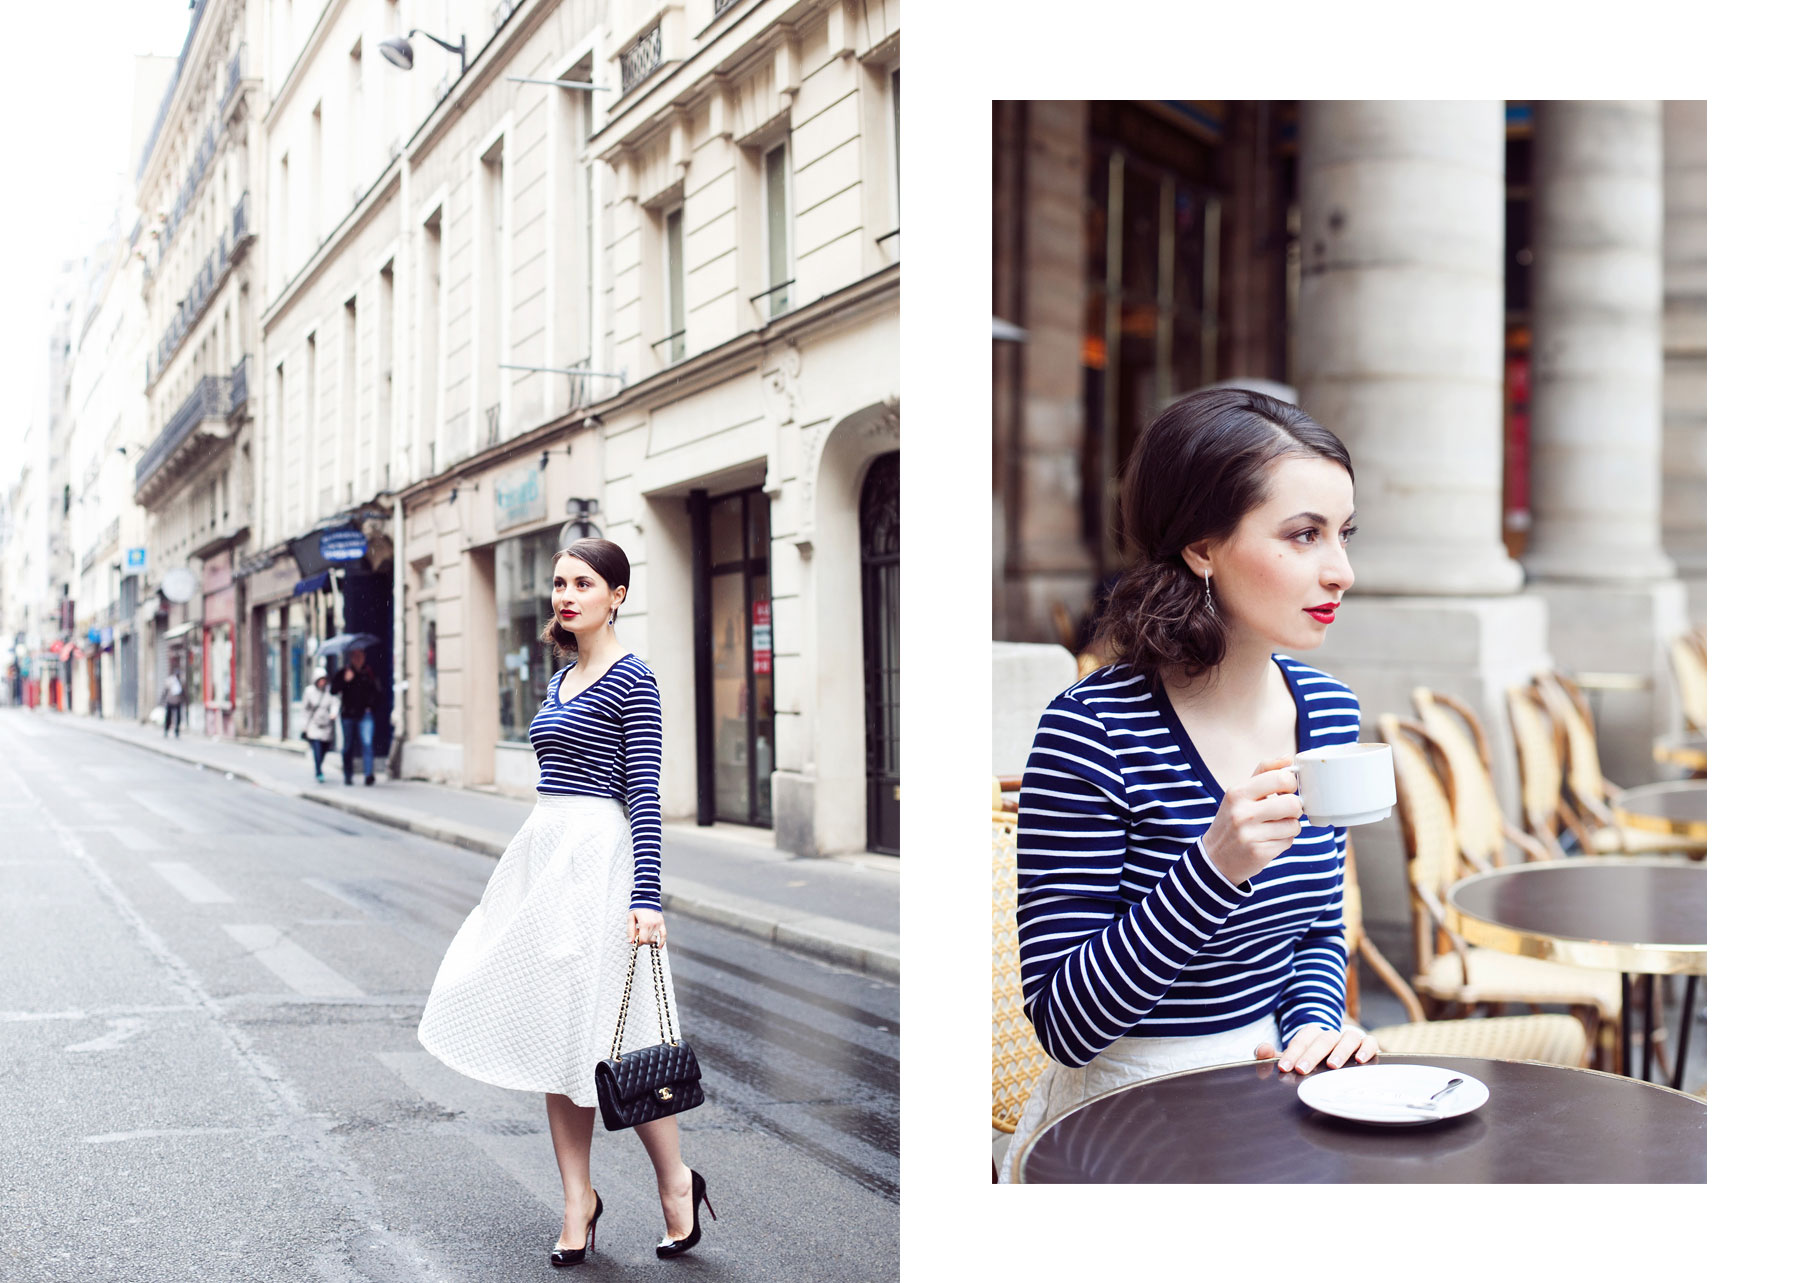 Kate in Paris by Carin Olsson (Paris in Four Months)